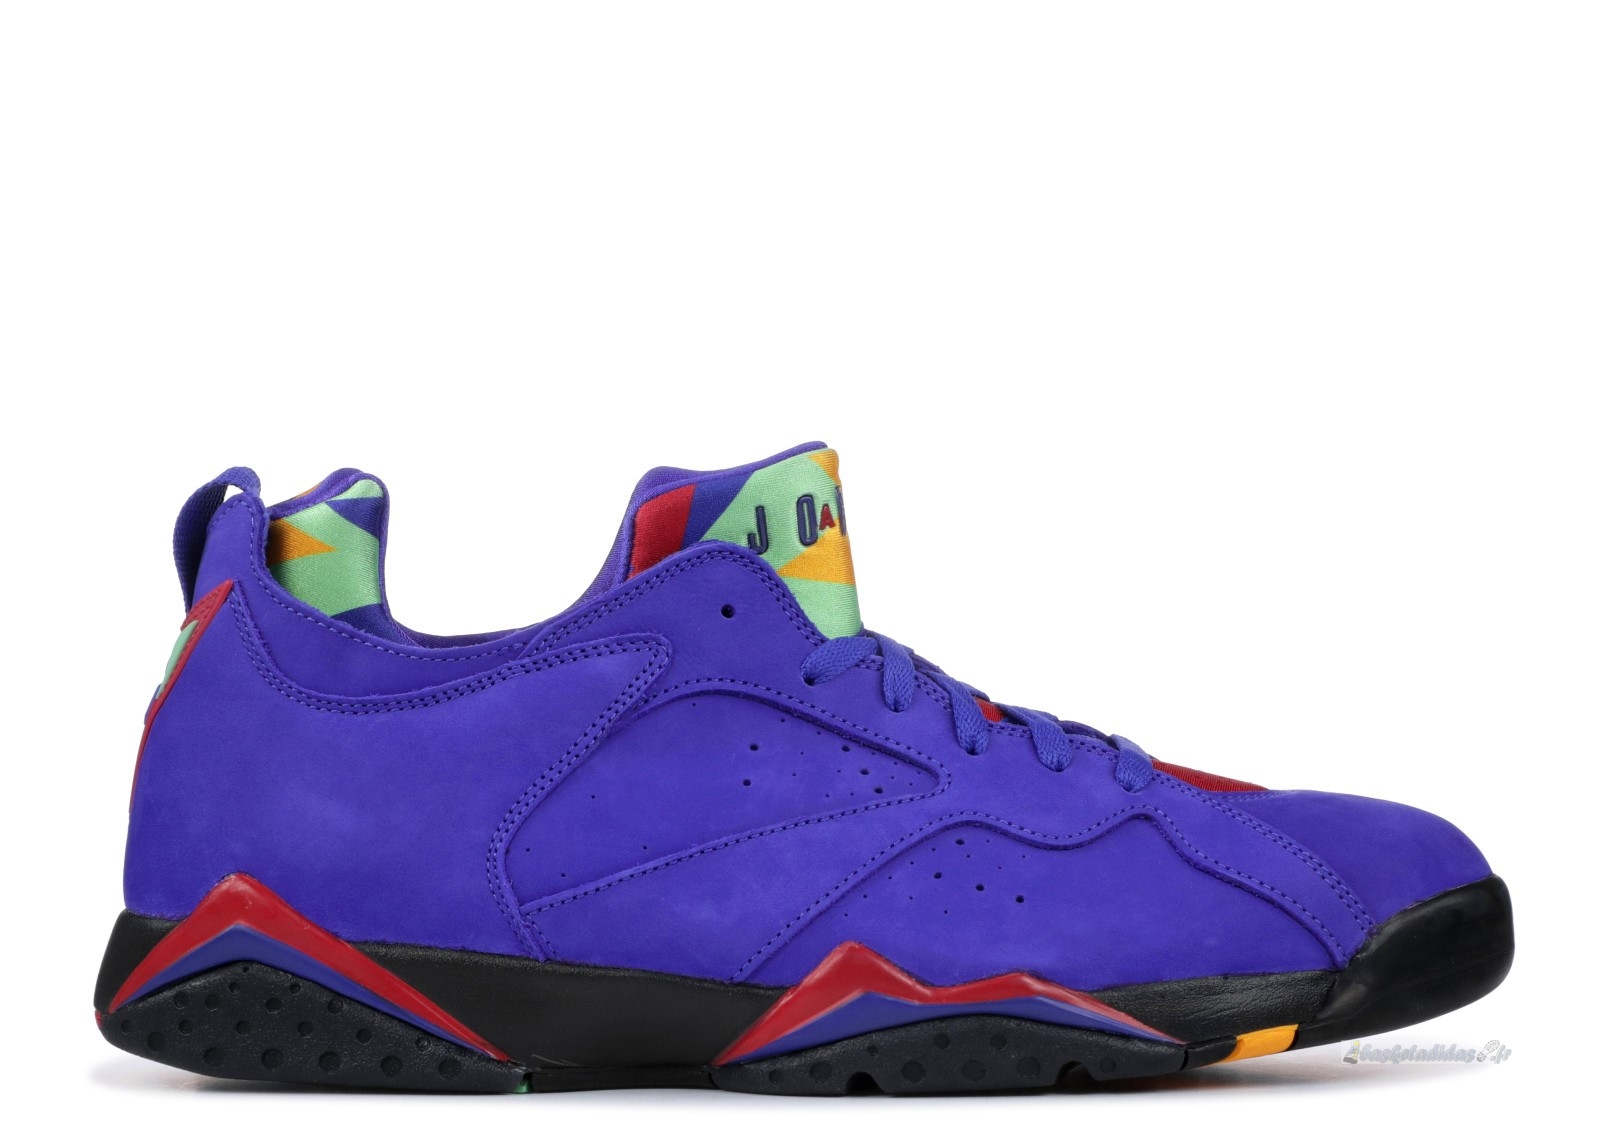 "Chaussure de Basket Air Jordan 7 Low Nrg ""Bright Concord"" Pourpre (ar4422-407)"